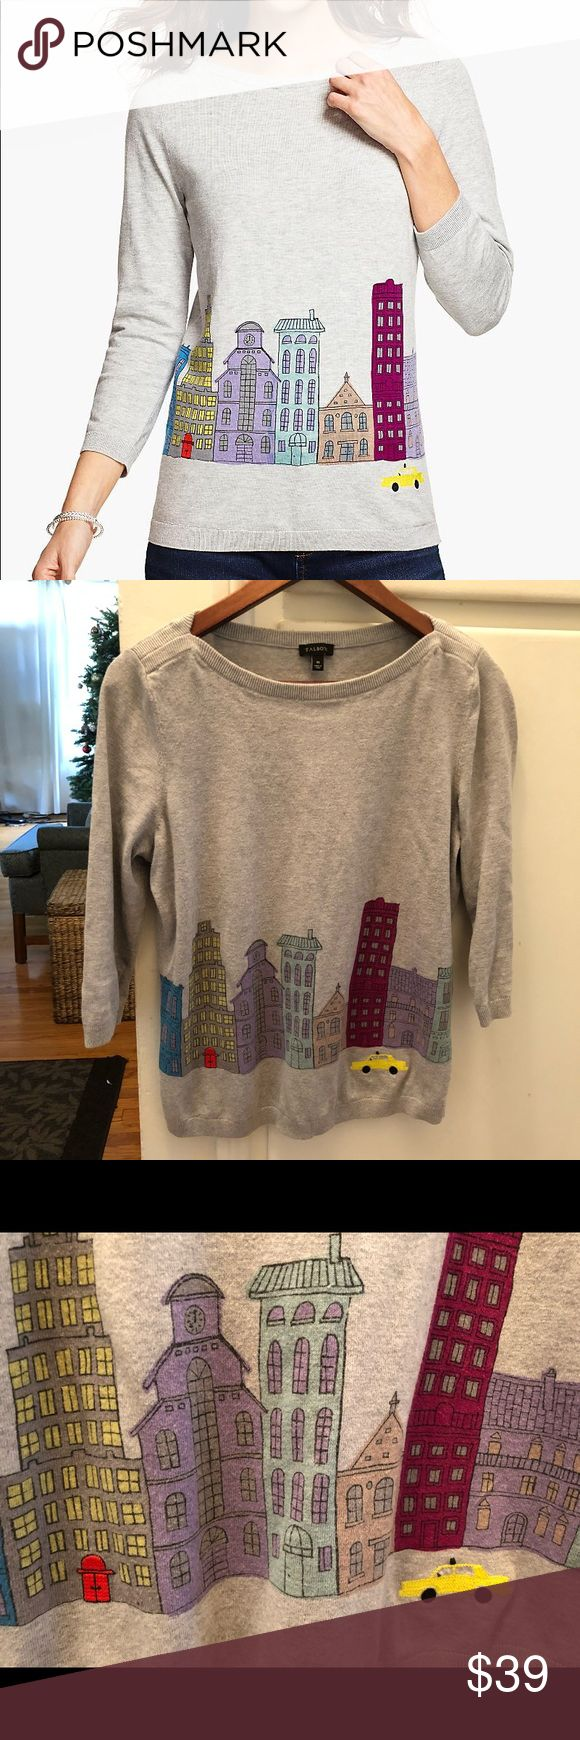 Talbots gray sweater- detailed stitching Beautiful crew neck gray sweater with a gray/plum cityscape and bright detailed stitching on the front (taxi cab and hotel door). Talbots Sweaters Crew & Scoop Necks